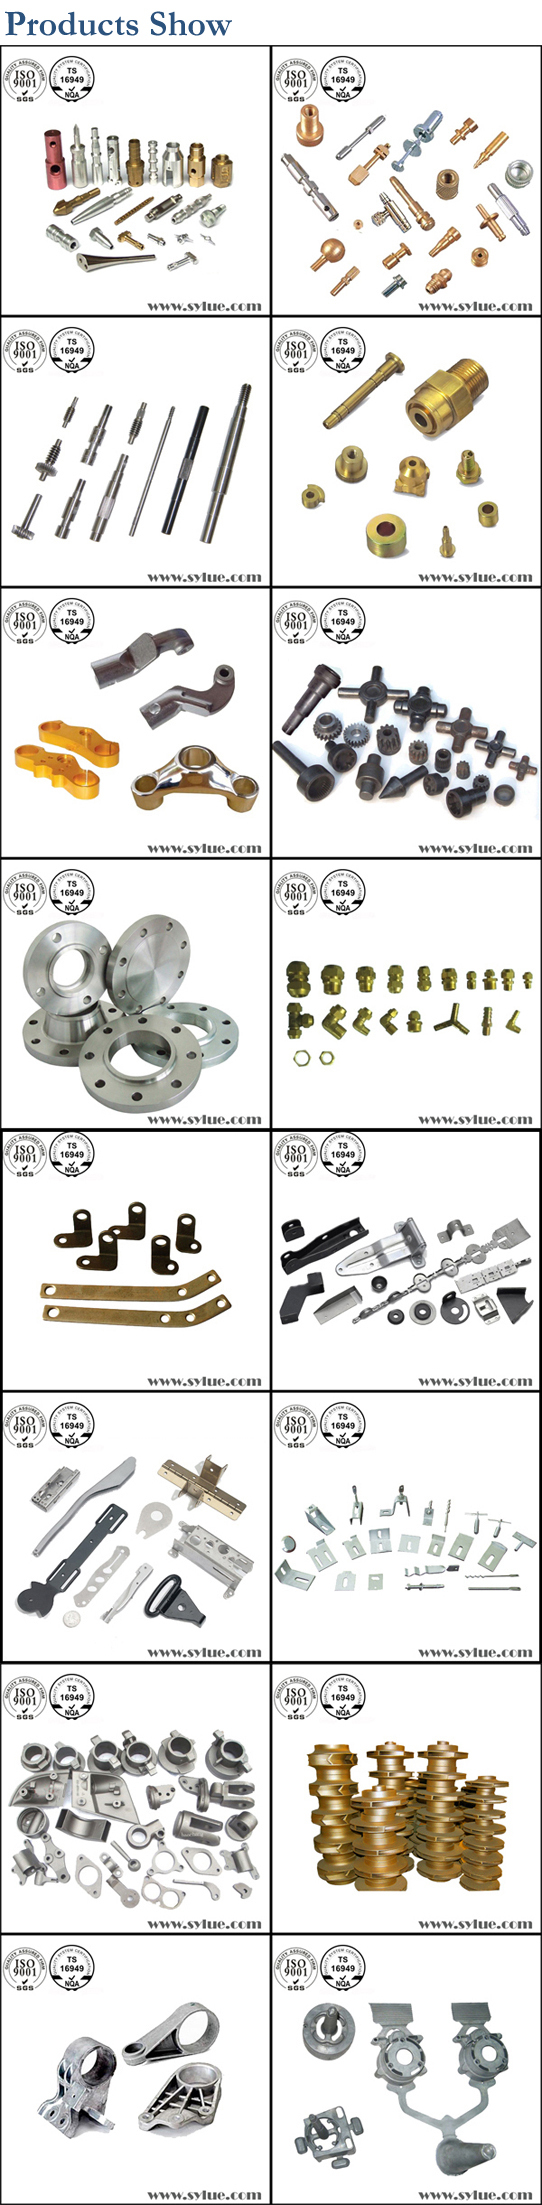 Aluminum,Brass,Copper,Stainless Steel,Steel Alloys Material Capabilities custom cnc machining